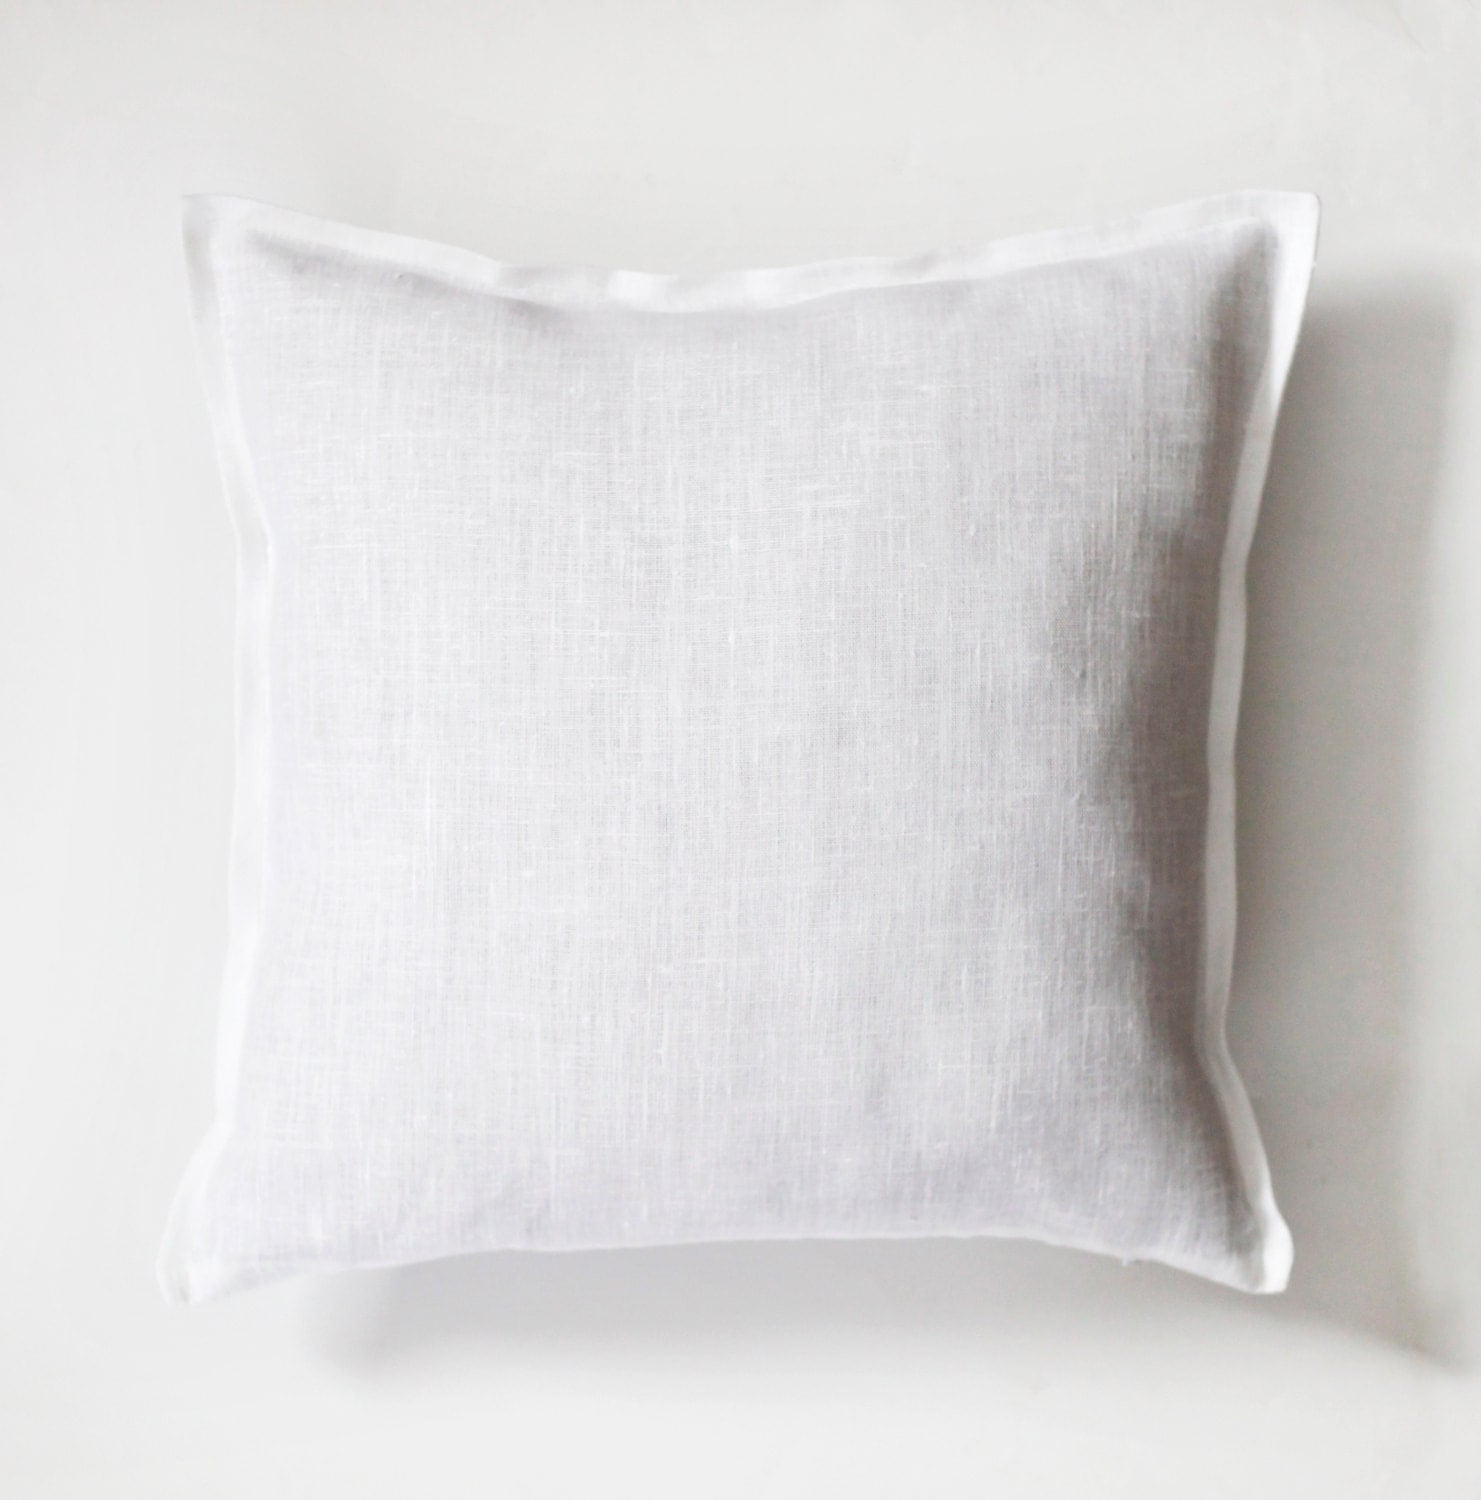 Decorative Linen Pillows : White euro sham ? natural fabric pillow cover ? decorative pillows ? linen pillow case ? 26?26 ...